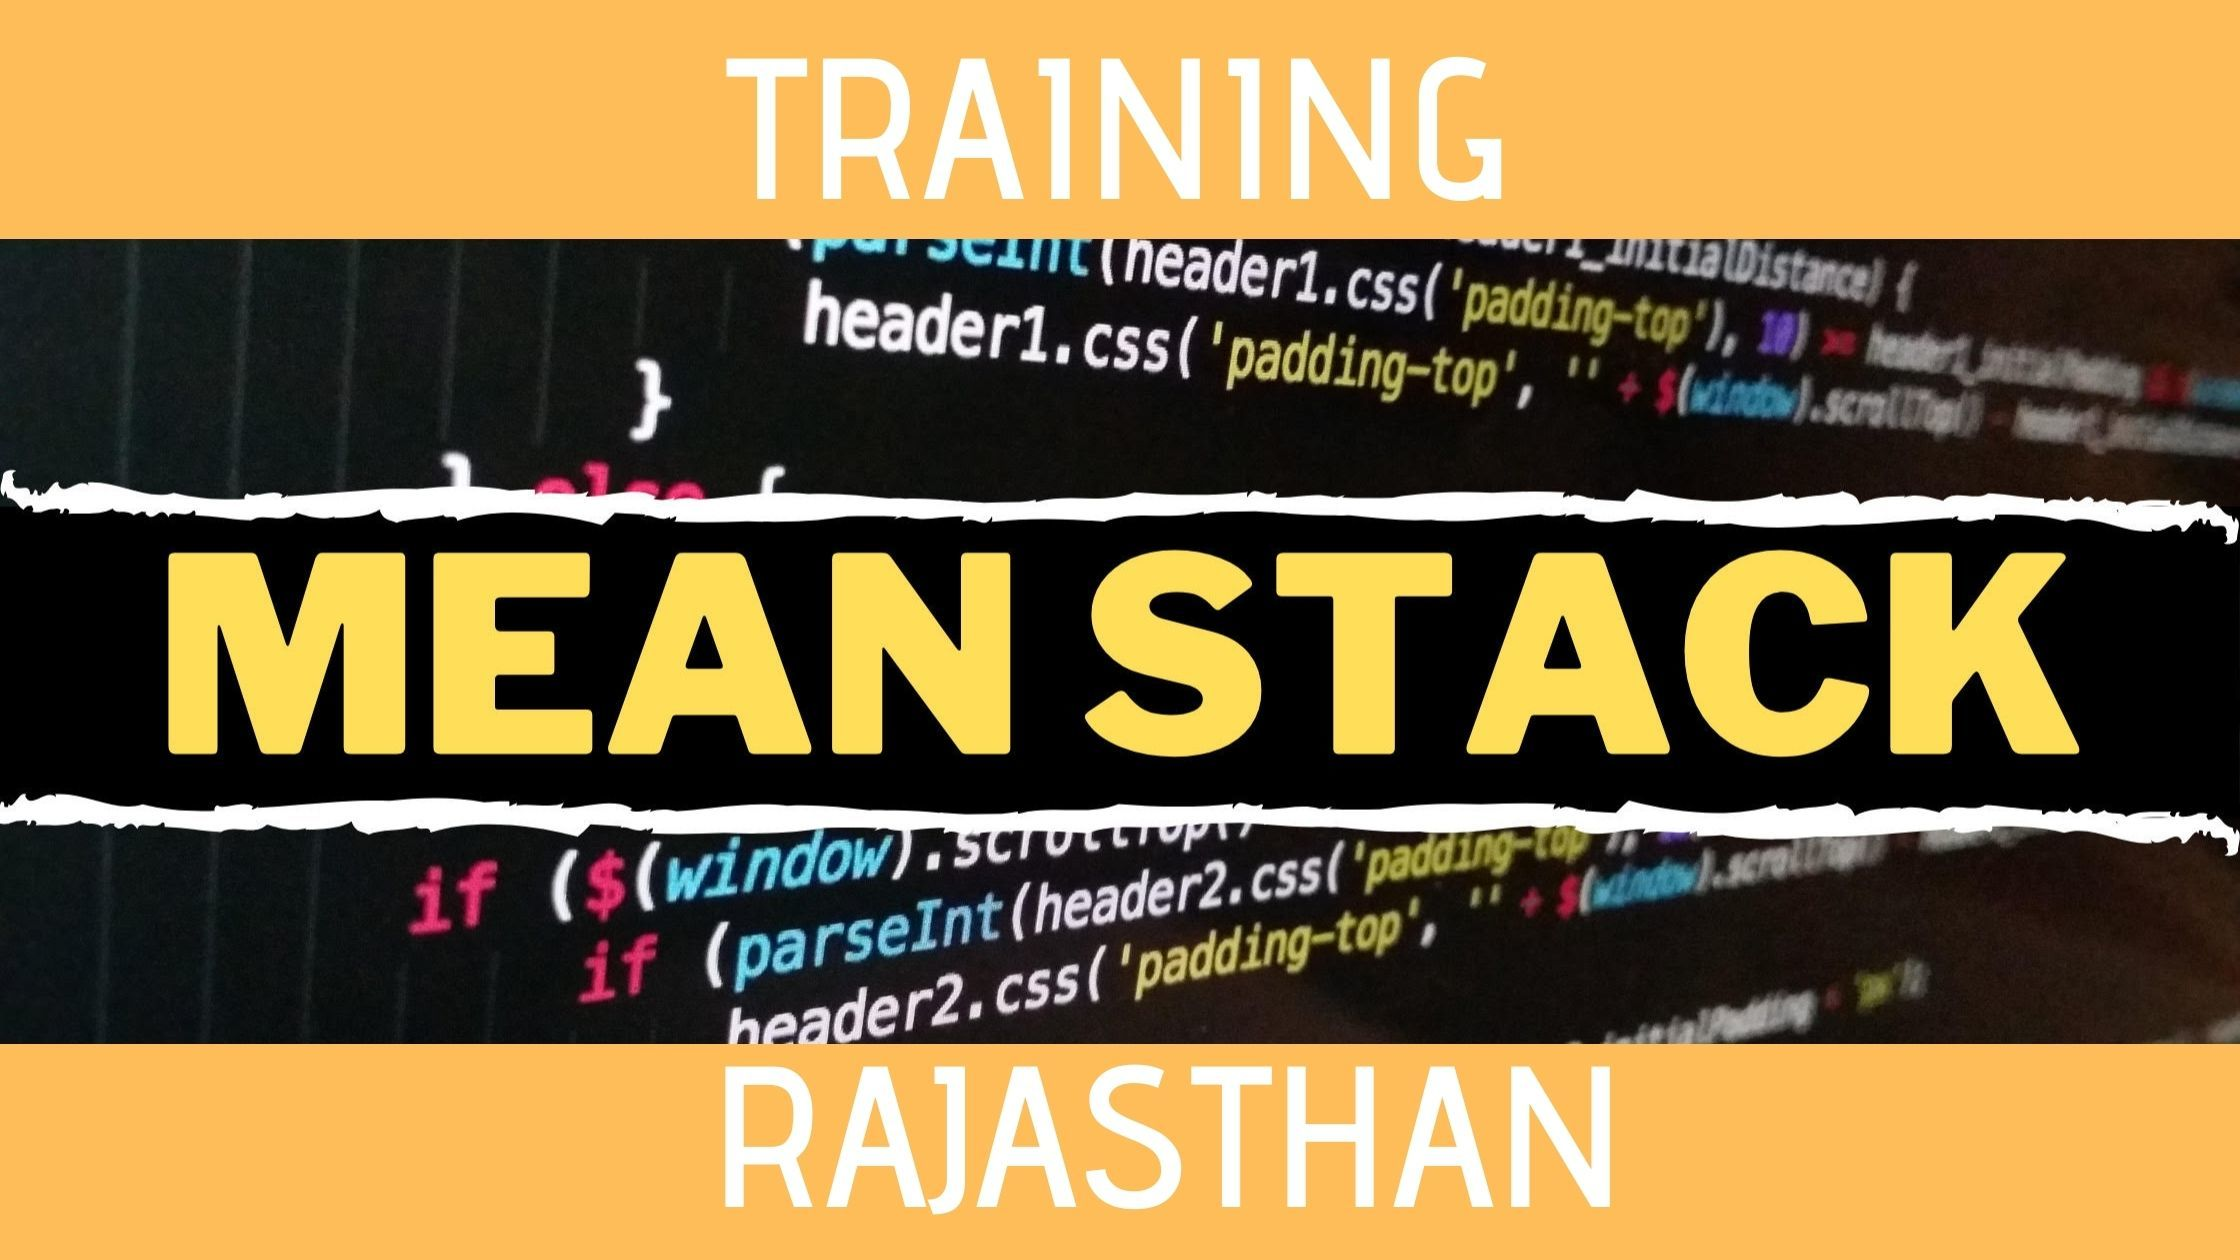 mean_stack_training_in_rajasthan-background.jpeg